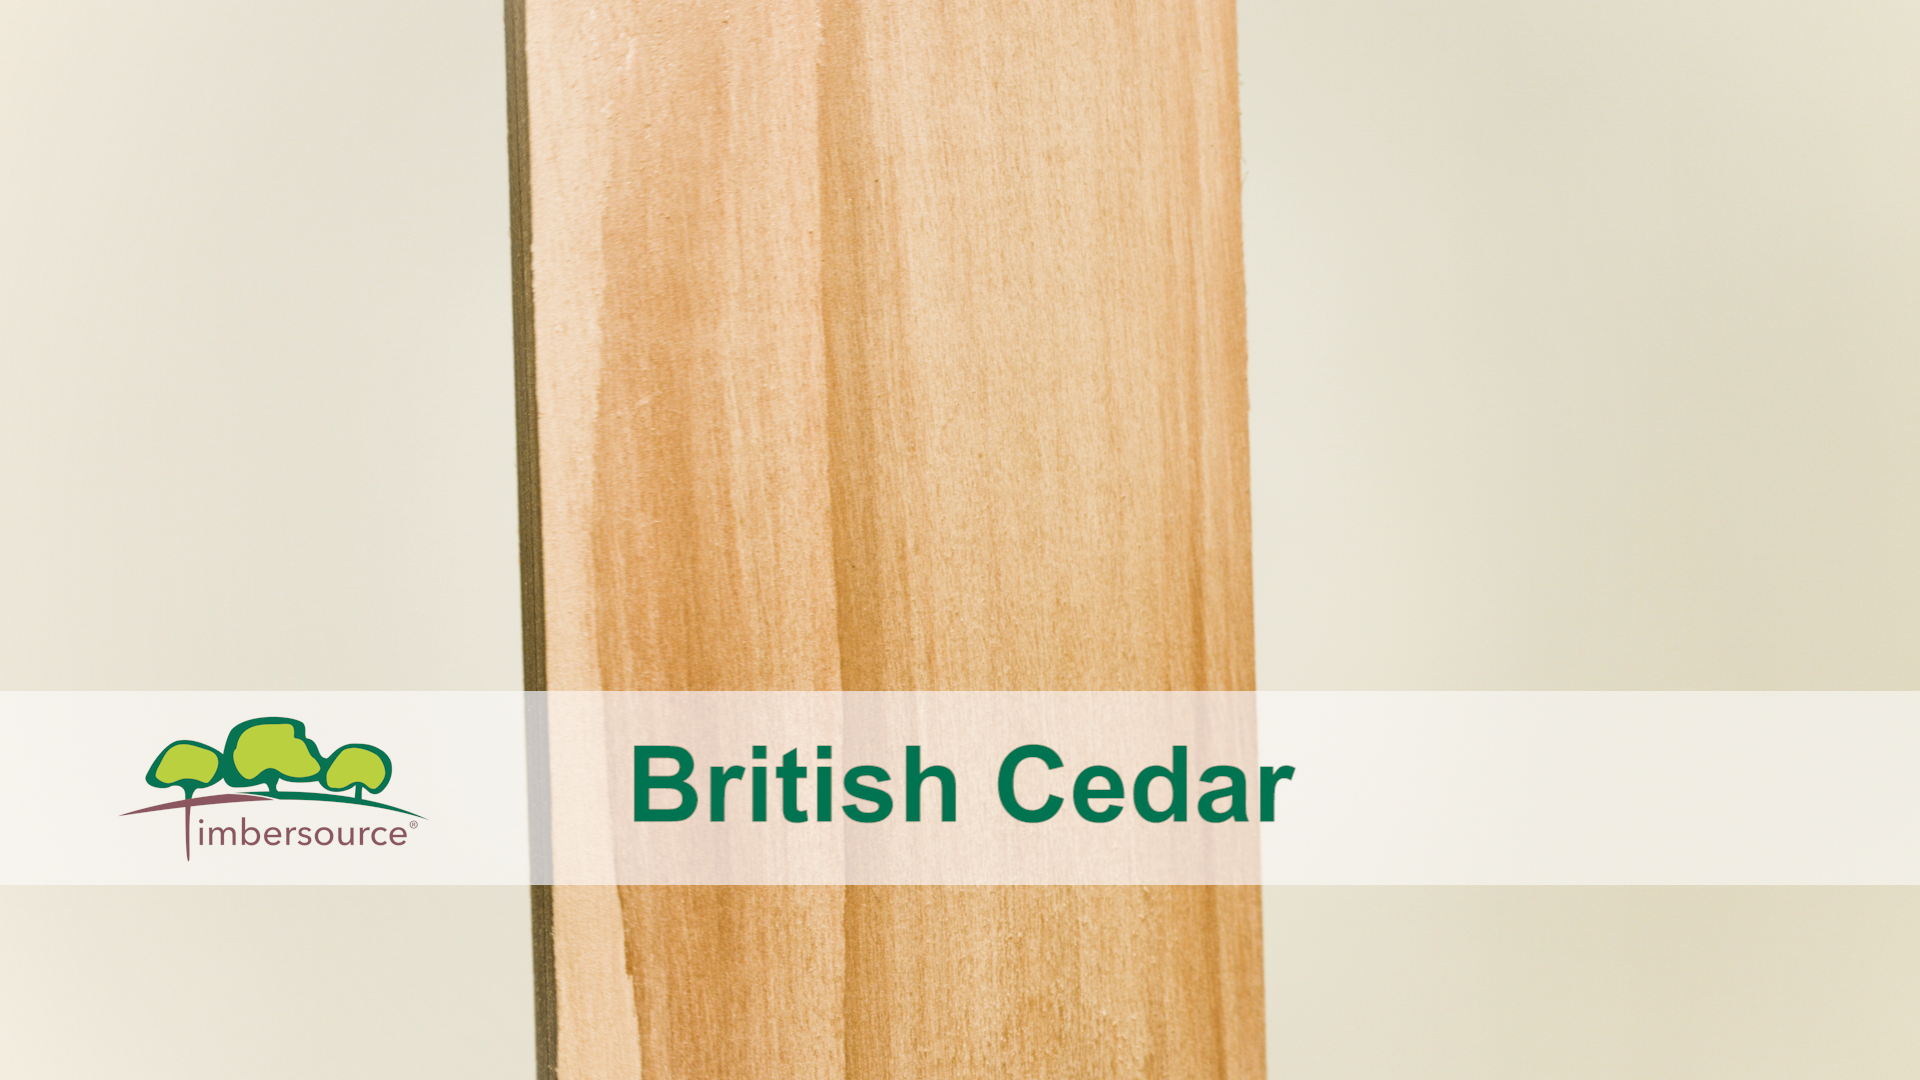 British Western Red Cedar | Timbersource Ltd